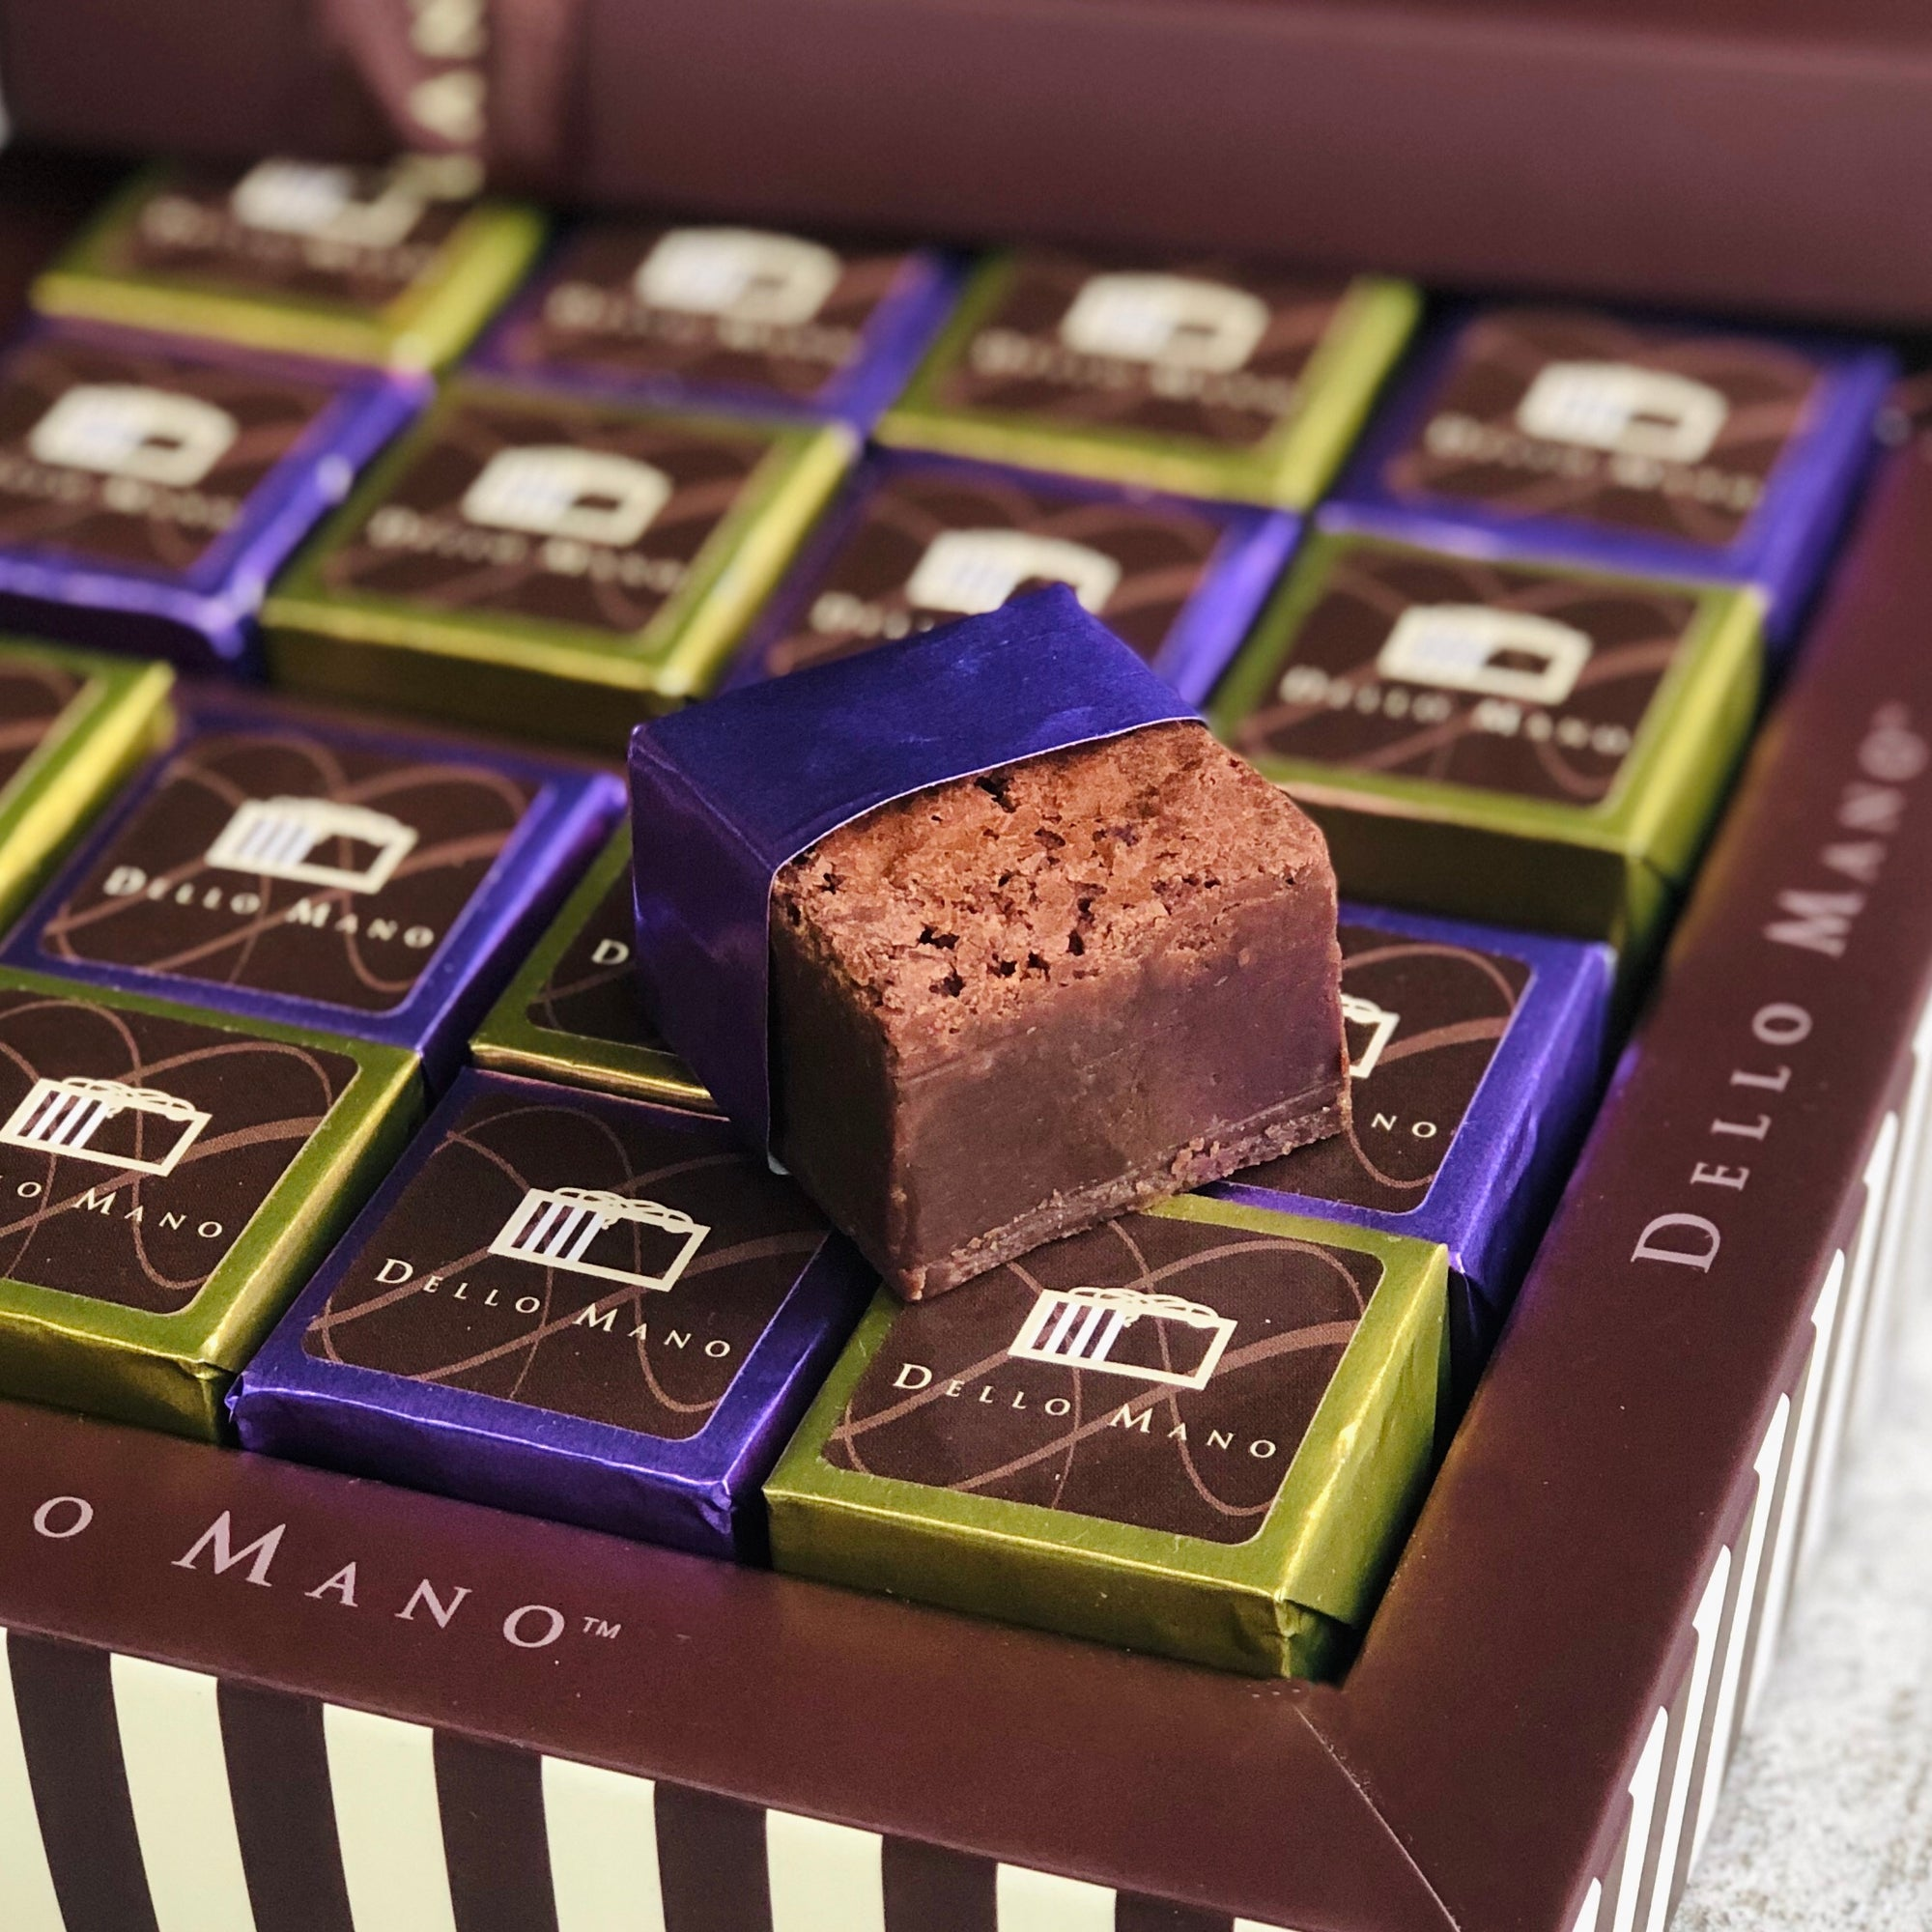 An open gift box of brownies with an purple foiled open brownie on top